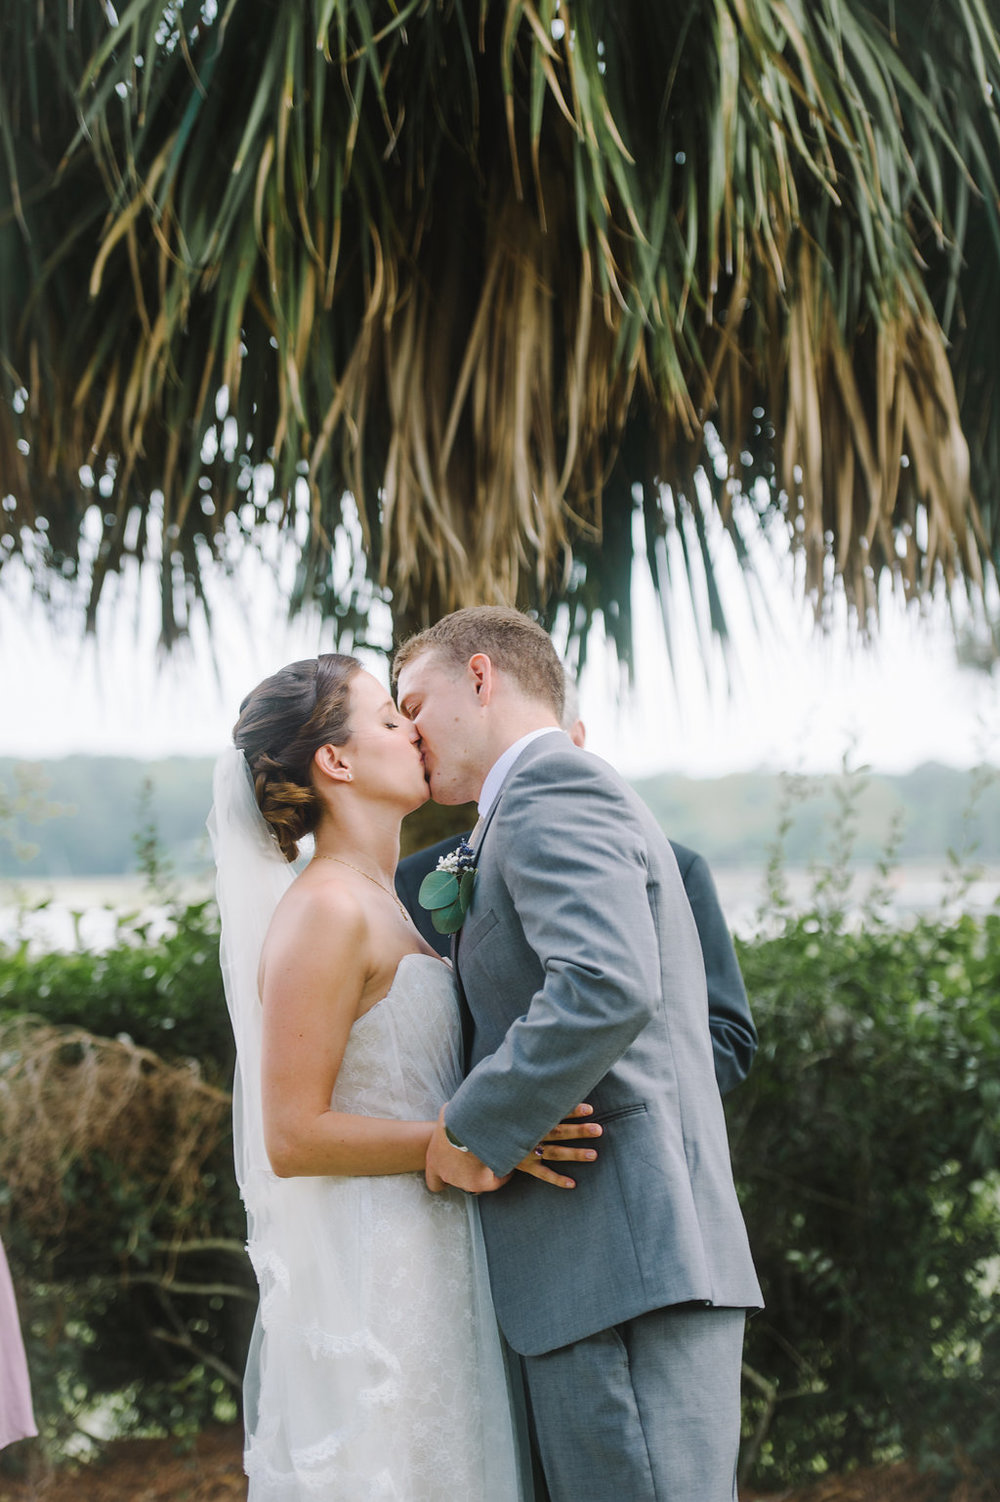 meagan-and-brenden-rach-loves-troy-photography-ivory-and-beau-bridal-boutqiue-ti-adora-wedding-dress-gold-lace-wedding-dress-savannah-wedding-planner-savannah-weddings-oldfield-plantation-wedding-savannah-florist-78.jpg